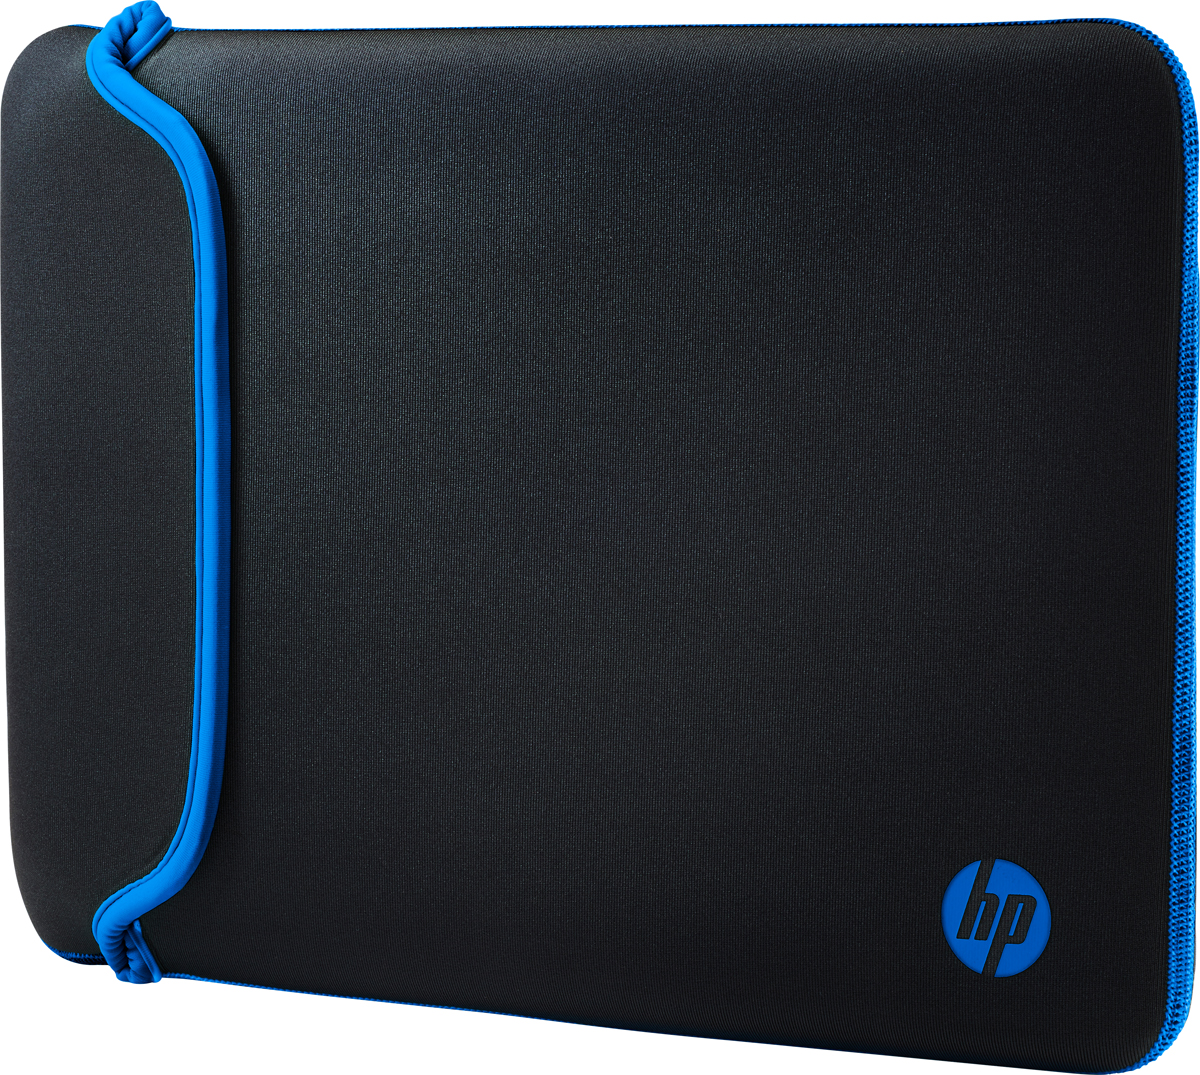 HP Neoprene Sleeve чехол для ноутбука 13.3, Black Blue (V5C25AA) hp ce320ad 128a black